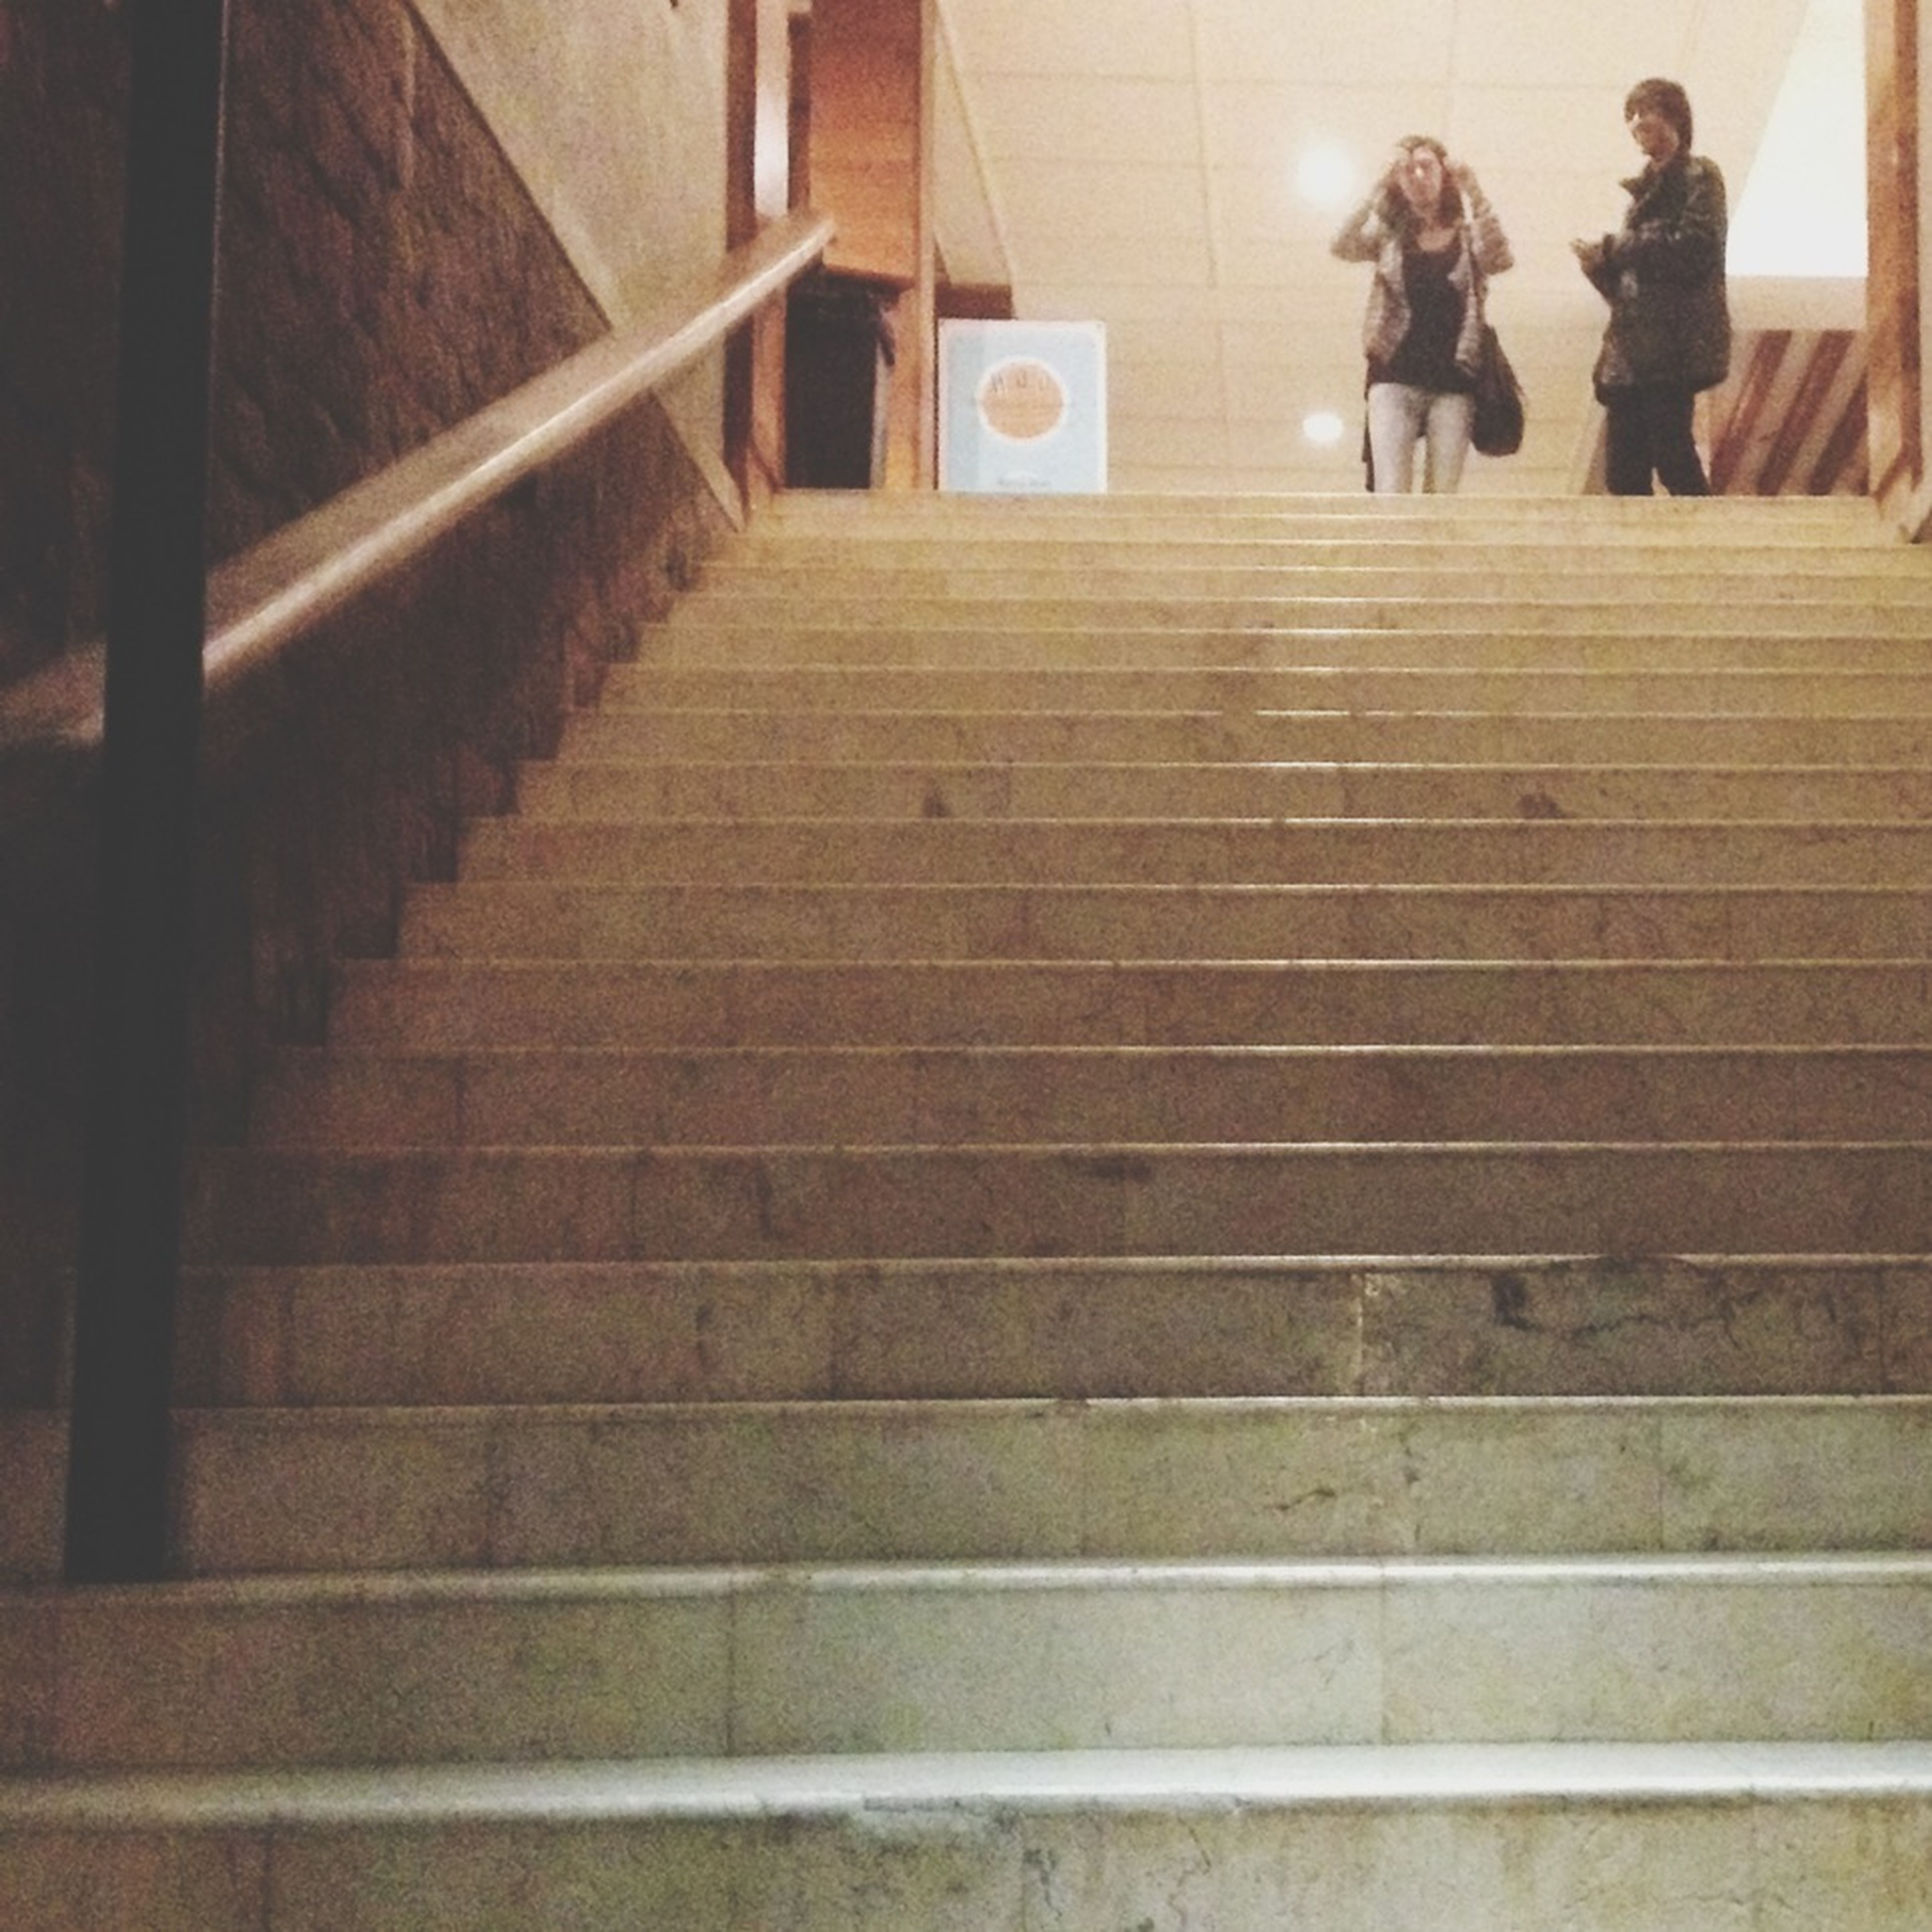 steps, steps and staircases, staircase, indoors, railing, architecture, built structure, stairs, low angle view, the way forward, men, wall - building feature, moving up, escalator, moving down, walking, full length, high angle view, building